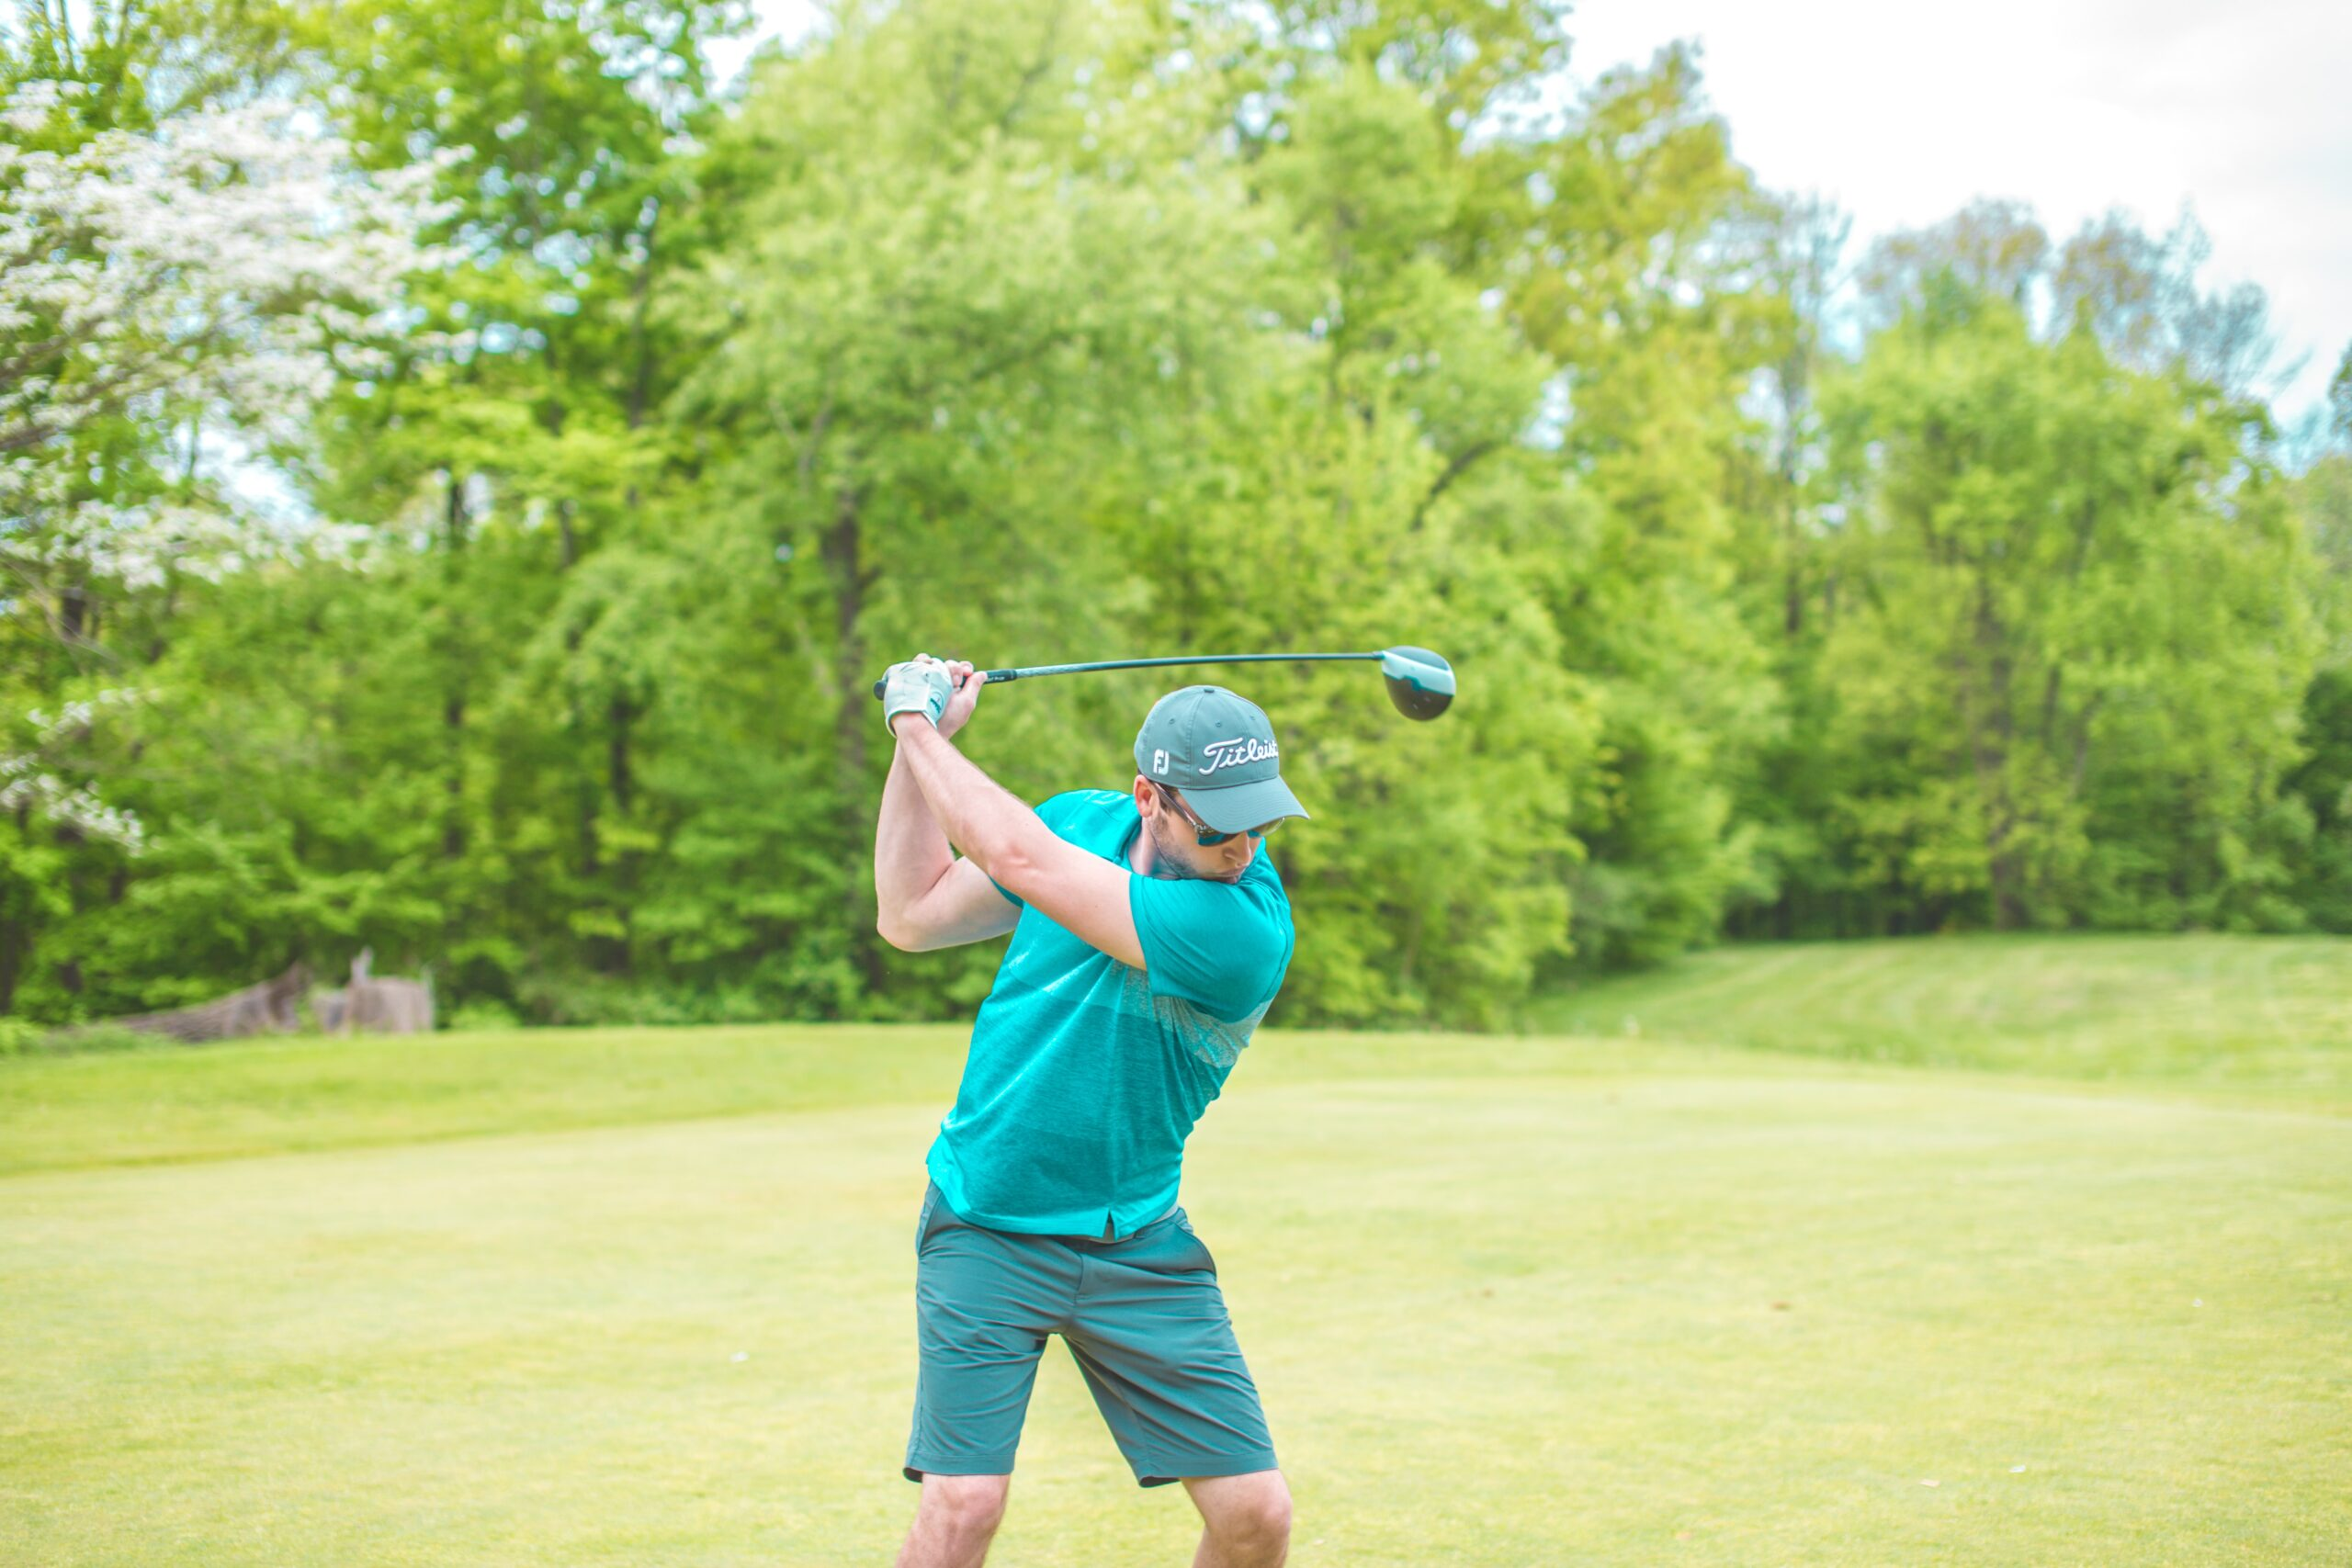 What are the best drills to improve your backswing?